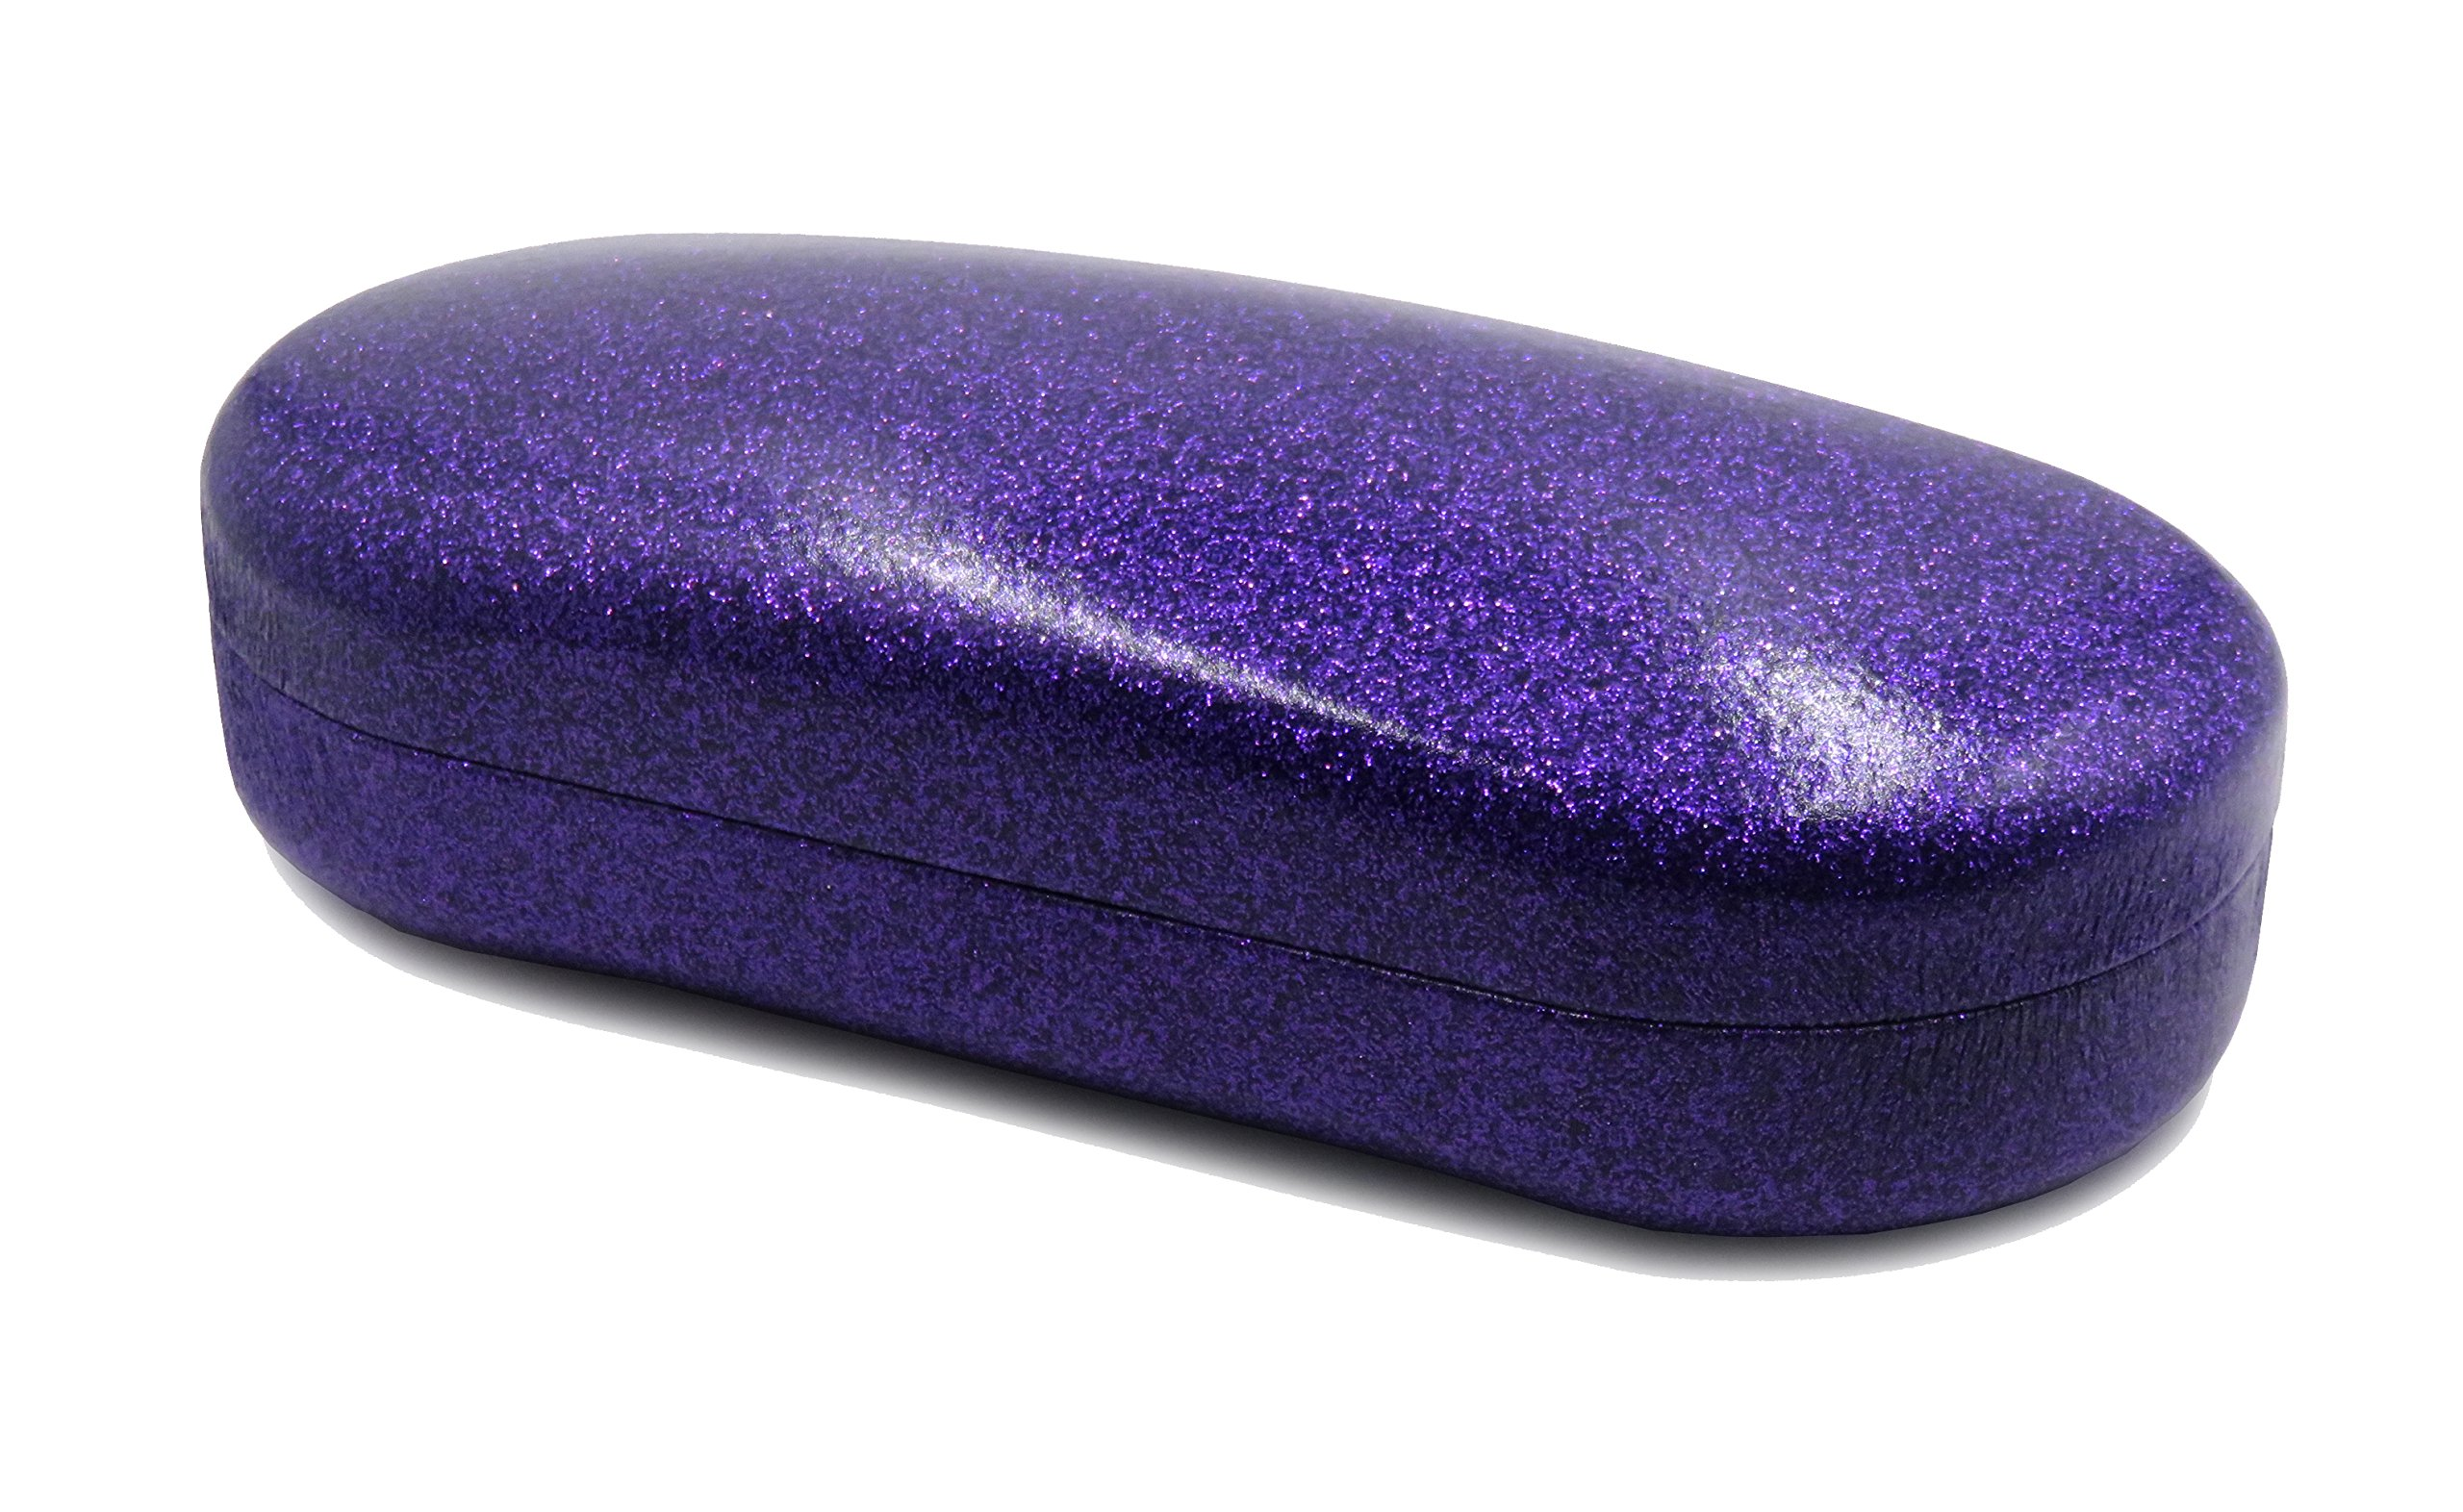 Glitter Hard Women Sunglasses Case Sparkling Eyeglass case with Cleaning Cloth by MyEyeglassCase